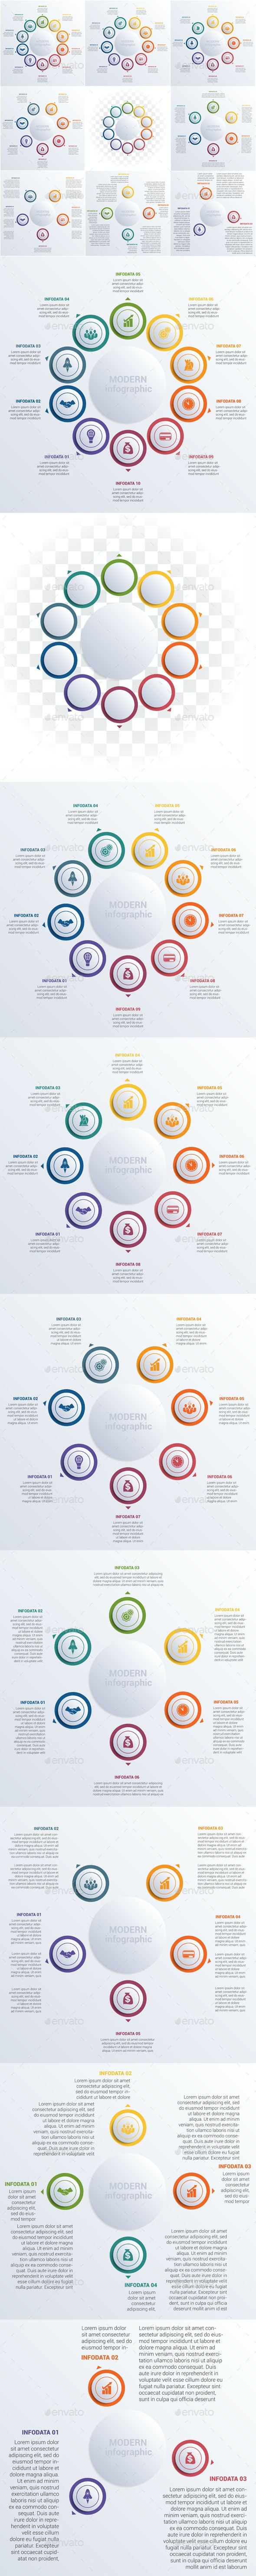 Modern Infographic diagram business steps for 3,4,5,6,7,8,9,10 options. - Infographics